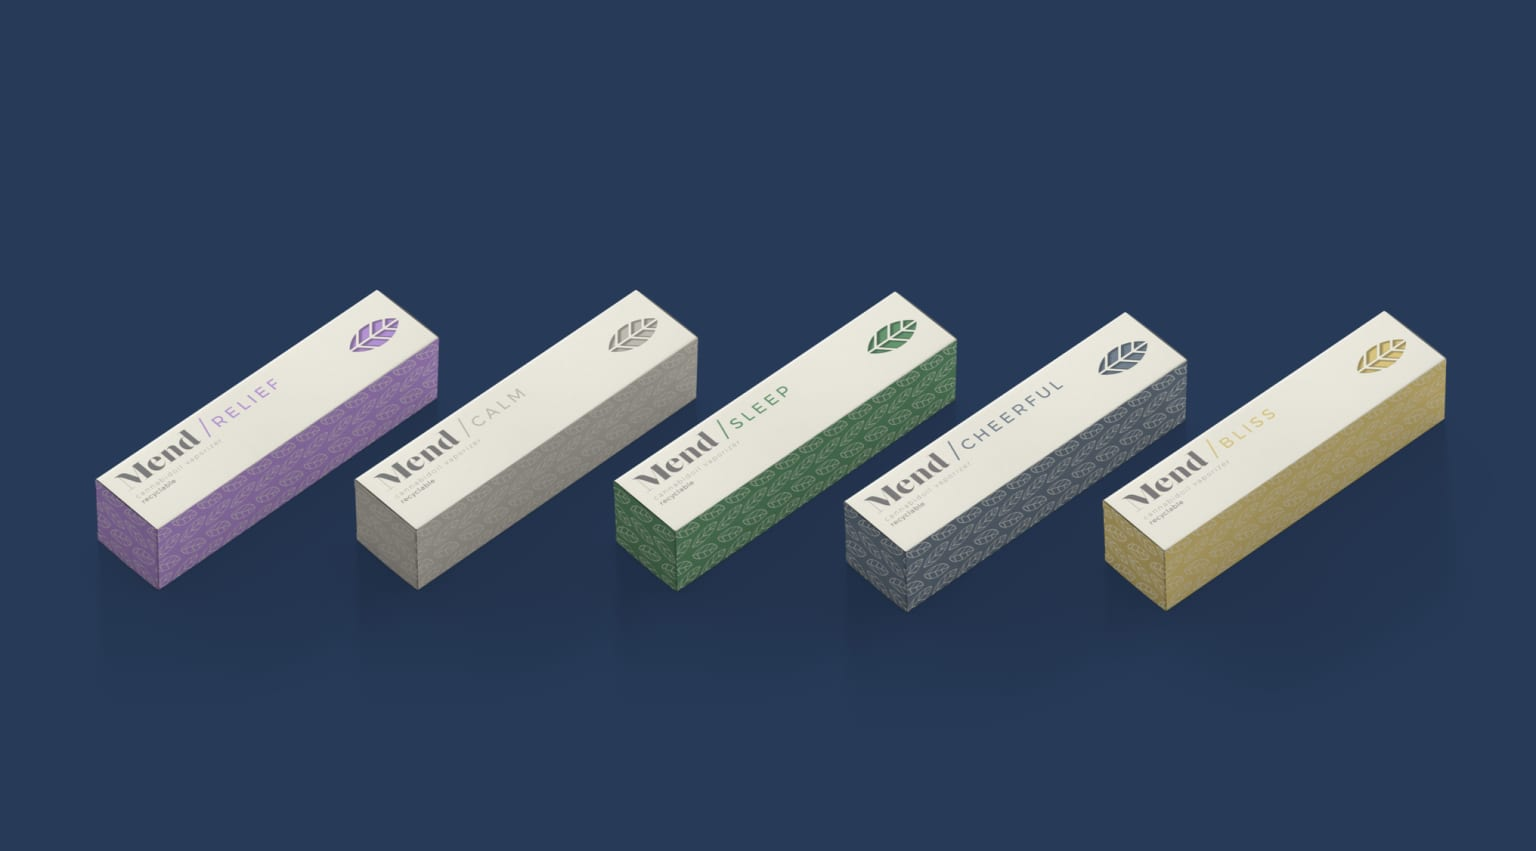 MEND Nutraceuticals - Medical Cannabis Brand + Packaging